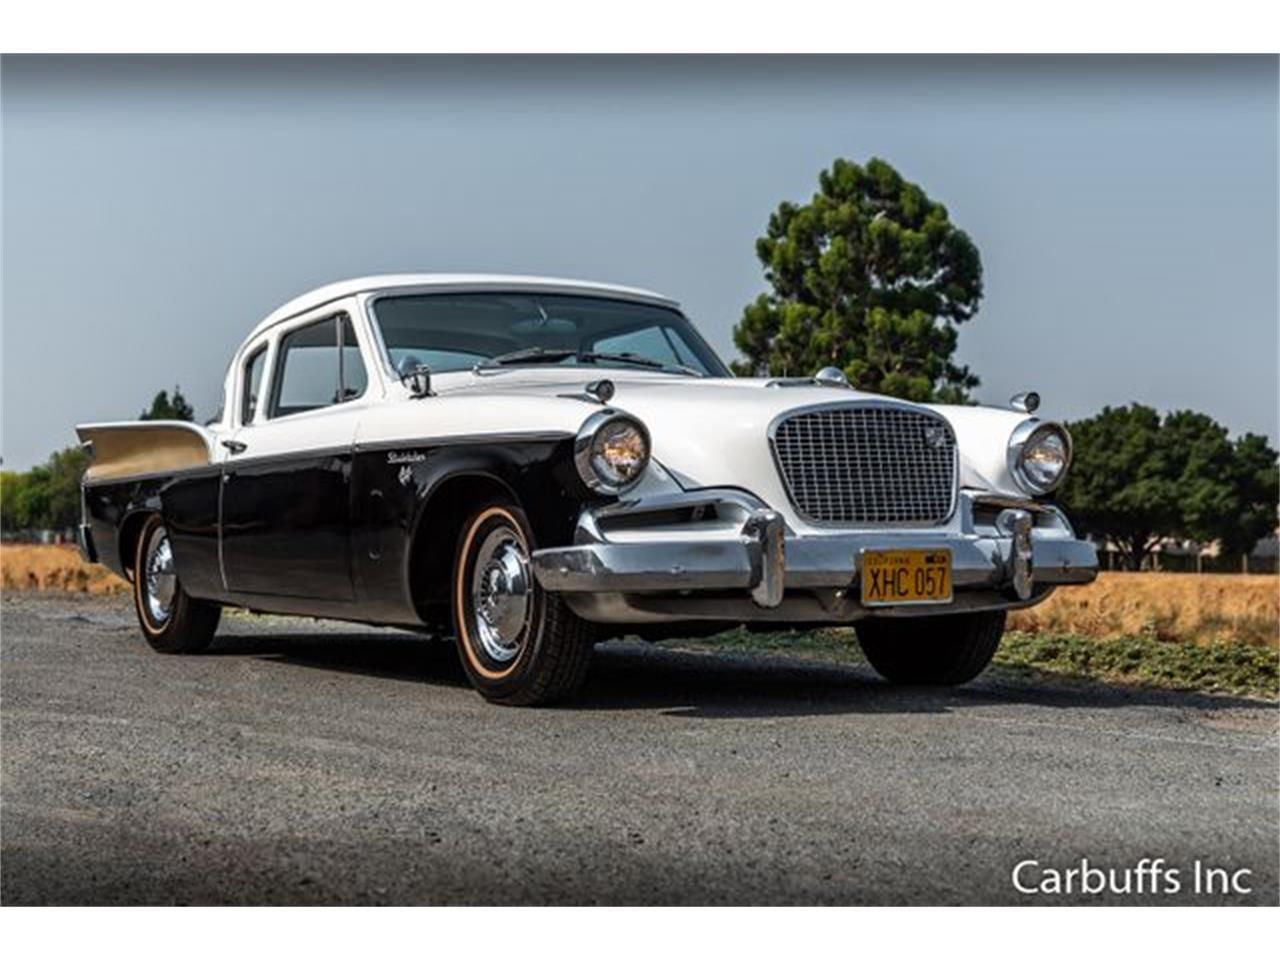 Large Picture of 1957 Studebaker Silver Hawk located in Concord California - $11,950.00 - PGPN